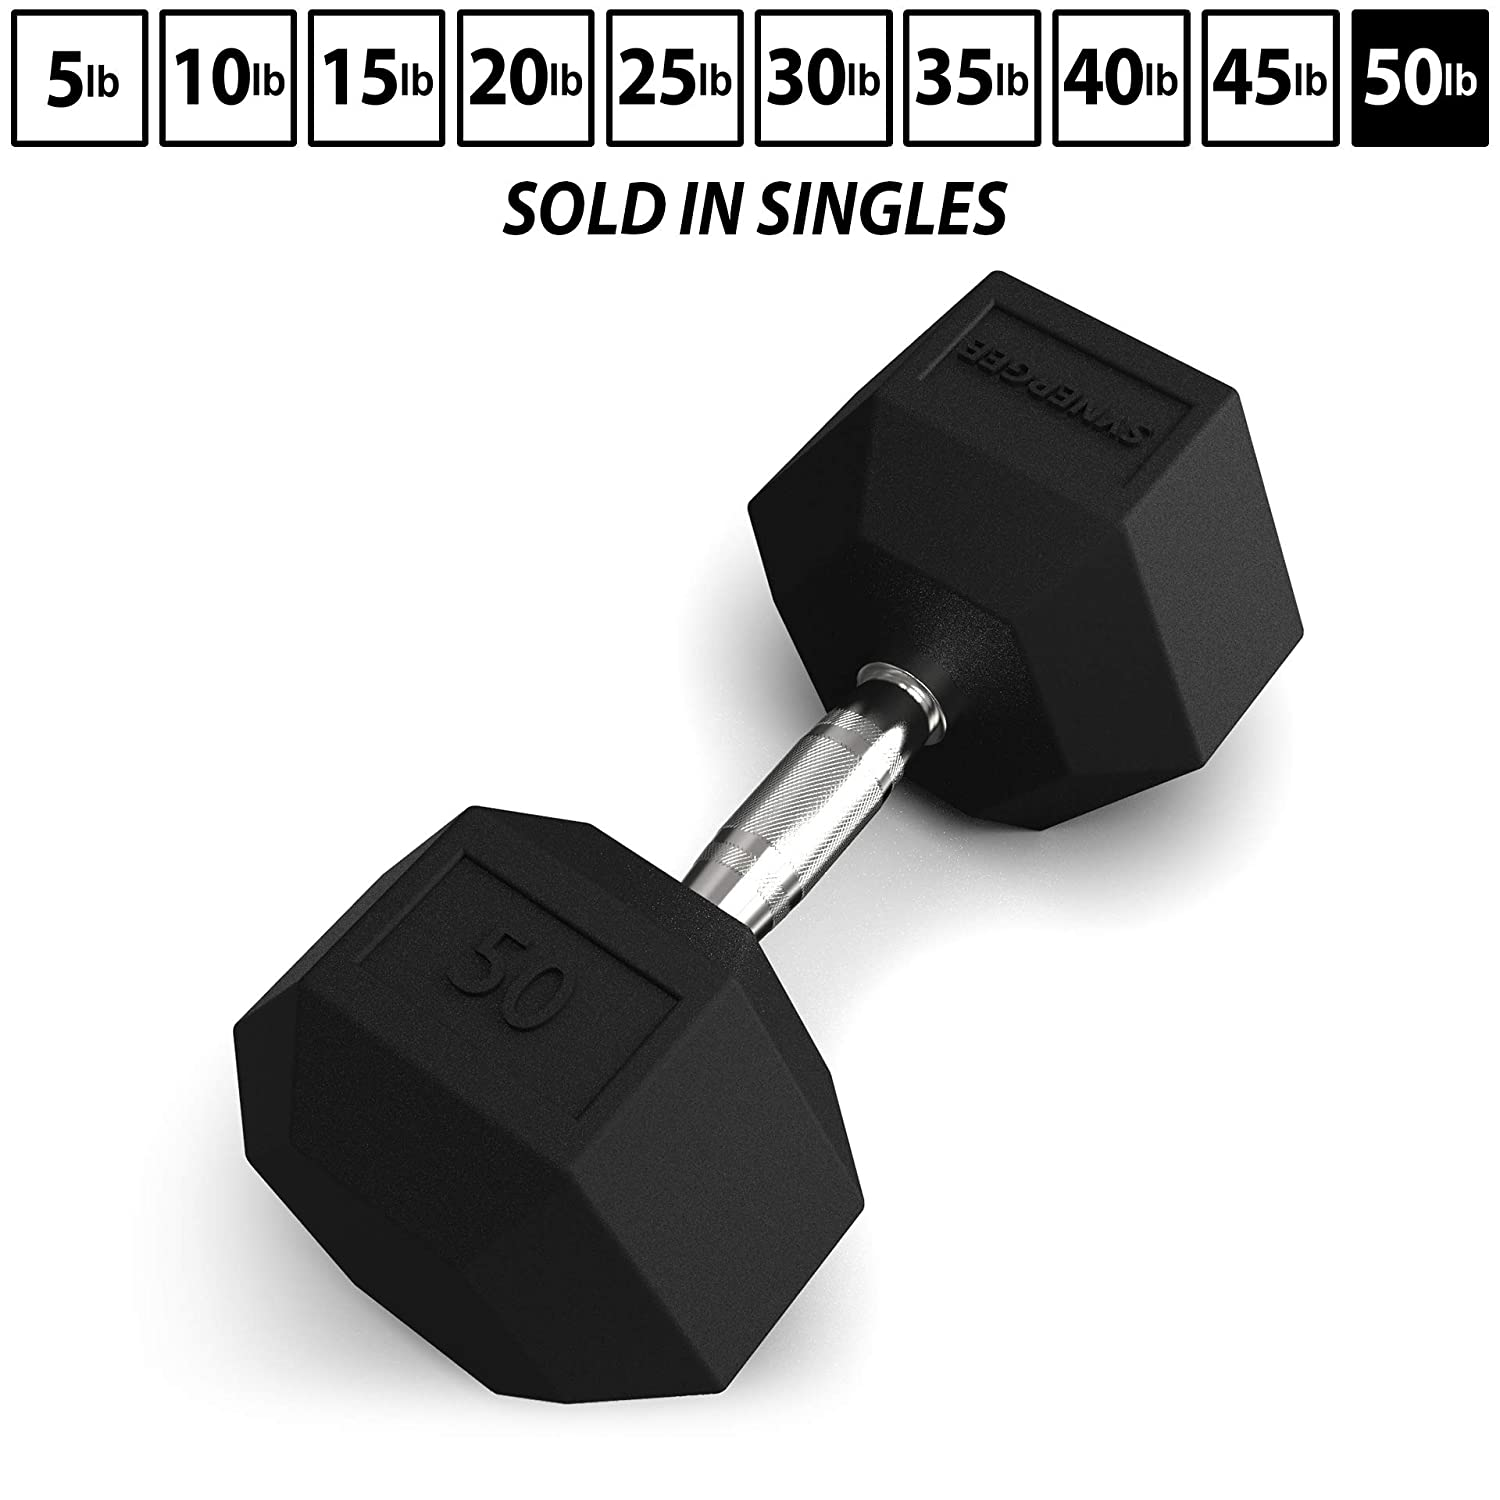 Synergee Rubber Encased Hex Dumbbells Chrome Handle Sold in Sets and Individually All Purpose Weights for Strength Conditioning Training – 5 lbs to 50 lbs in 5lb Increments